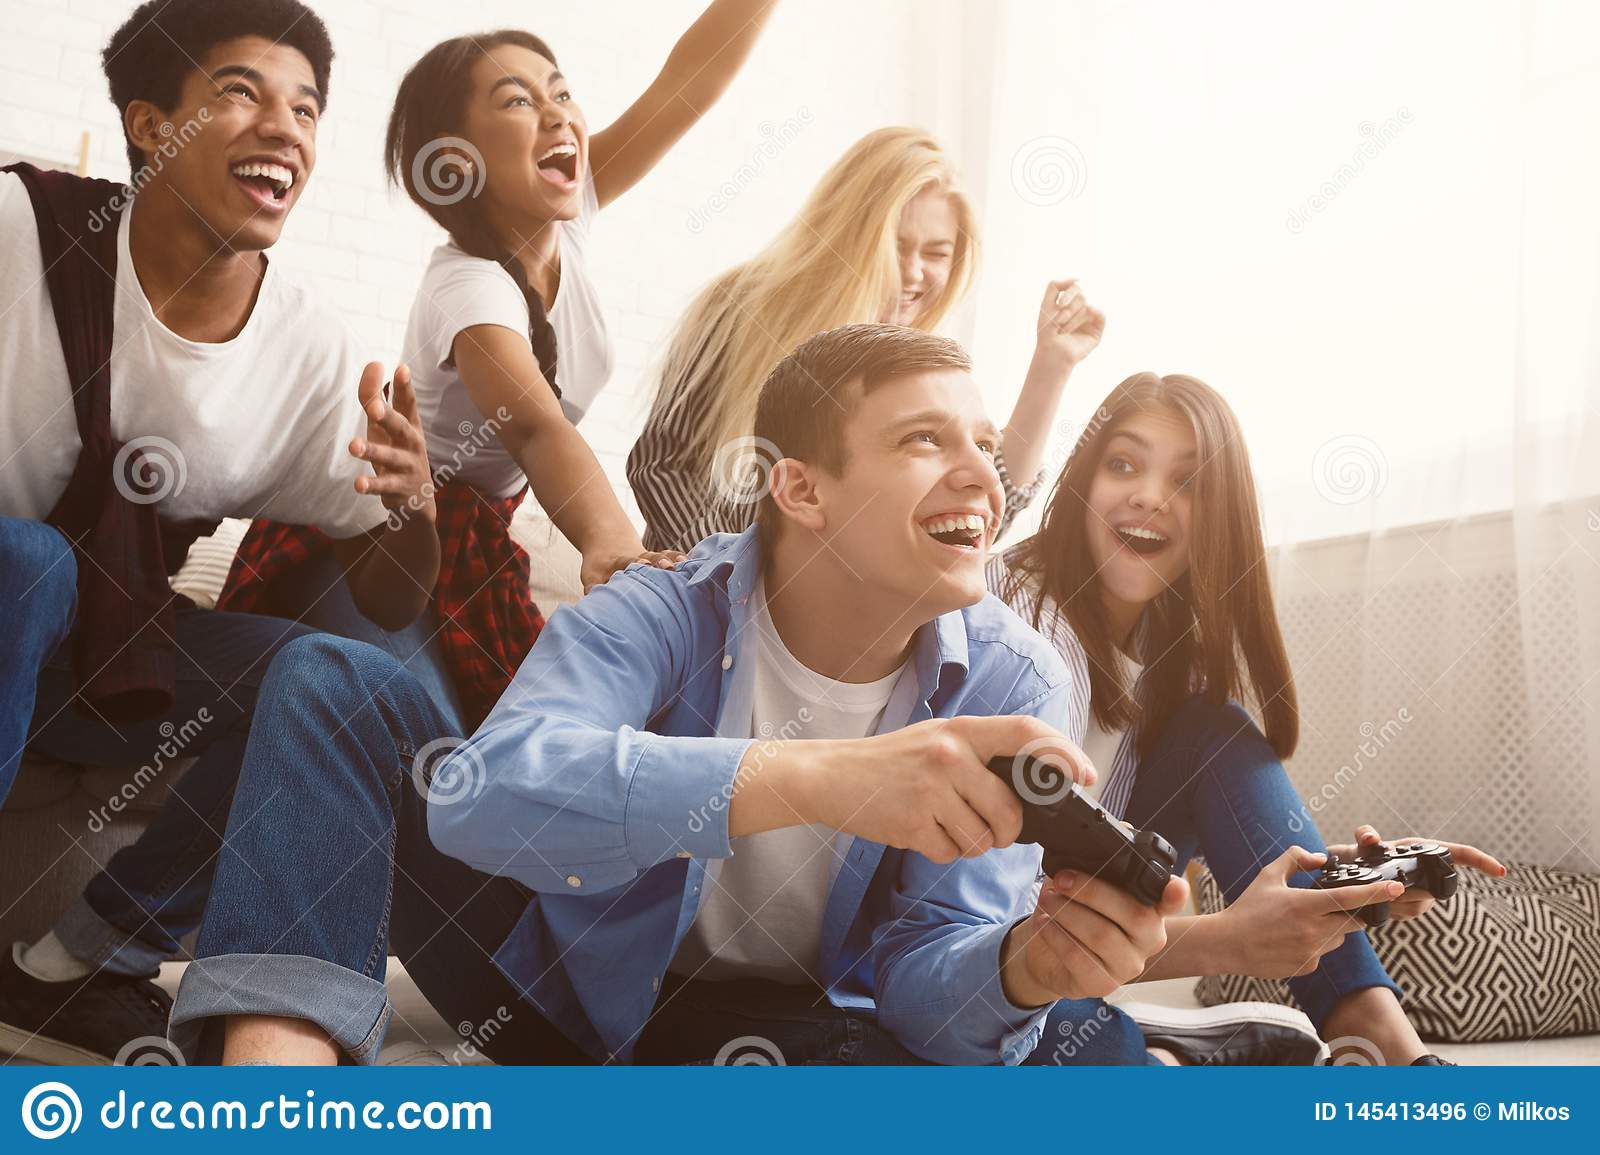 online teenagers games fun for